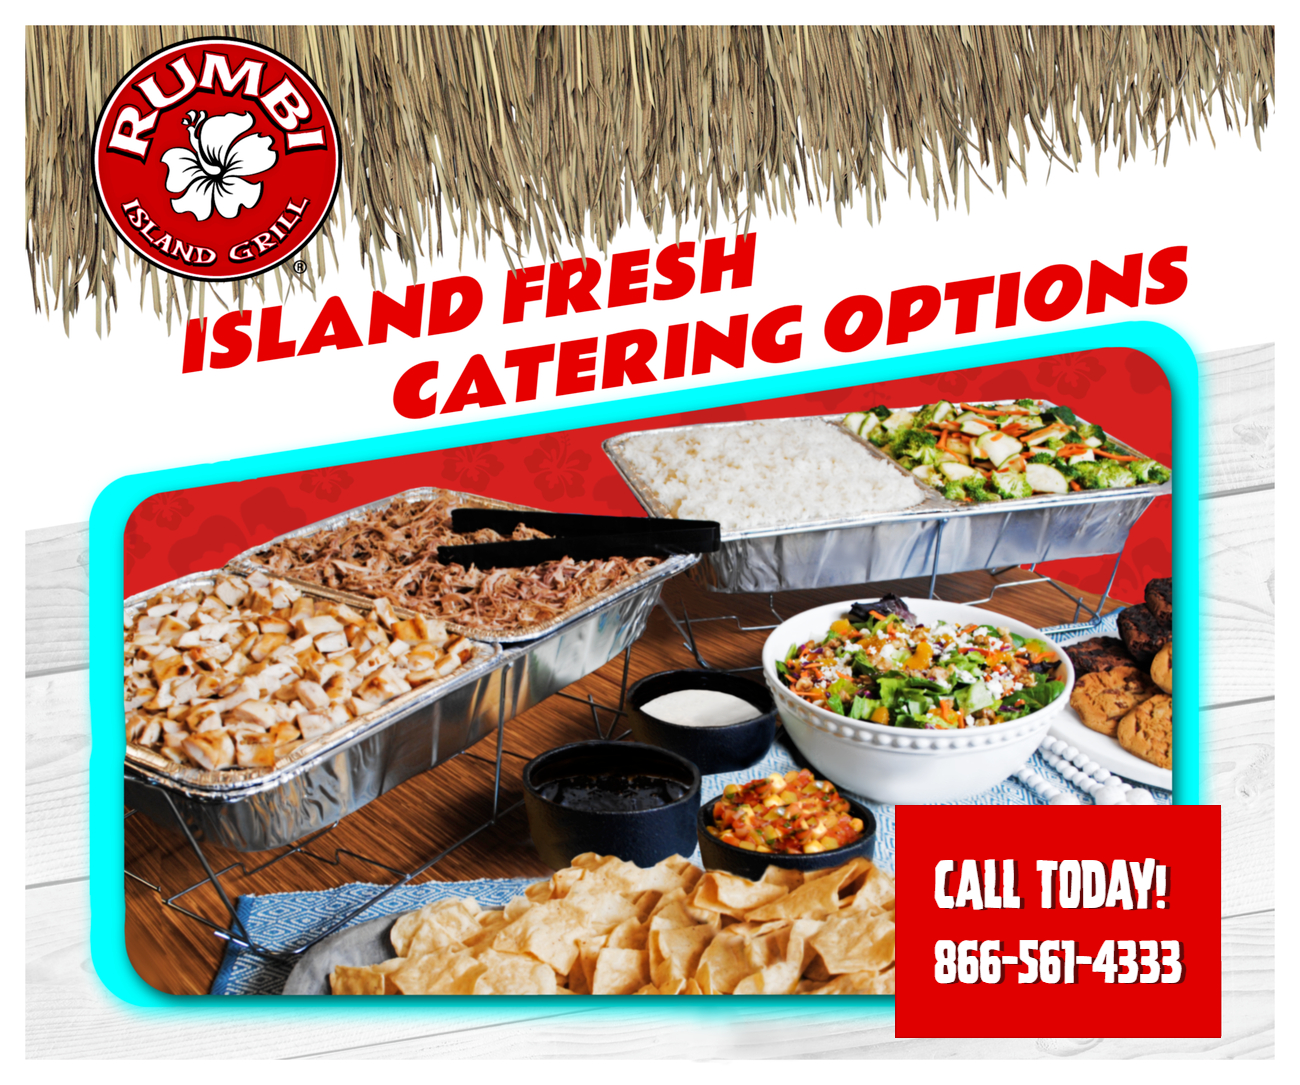 Rumbi Island Grill Catering